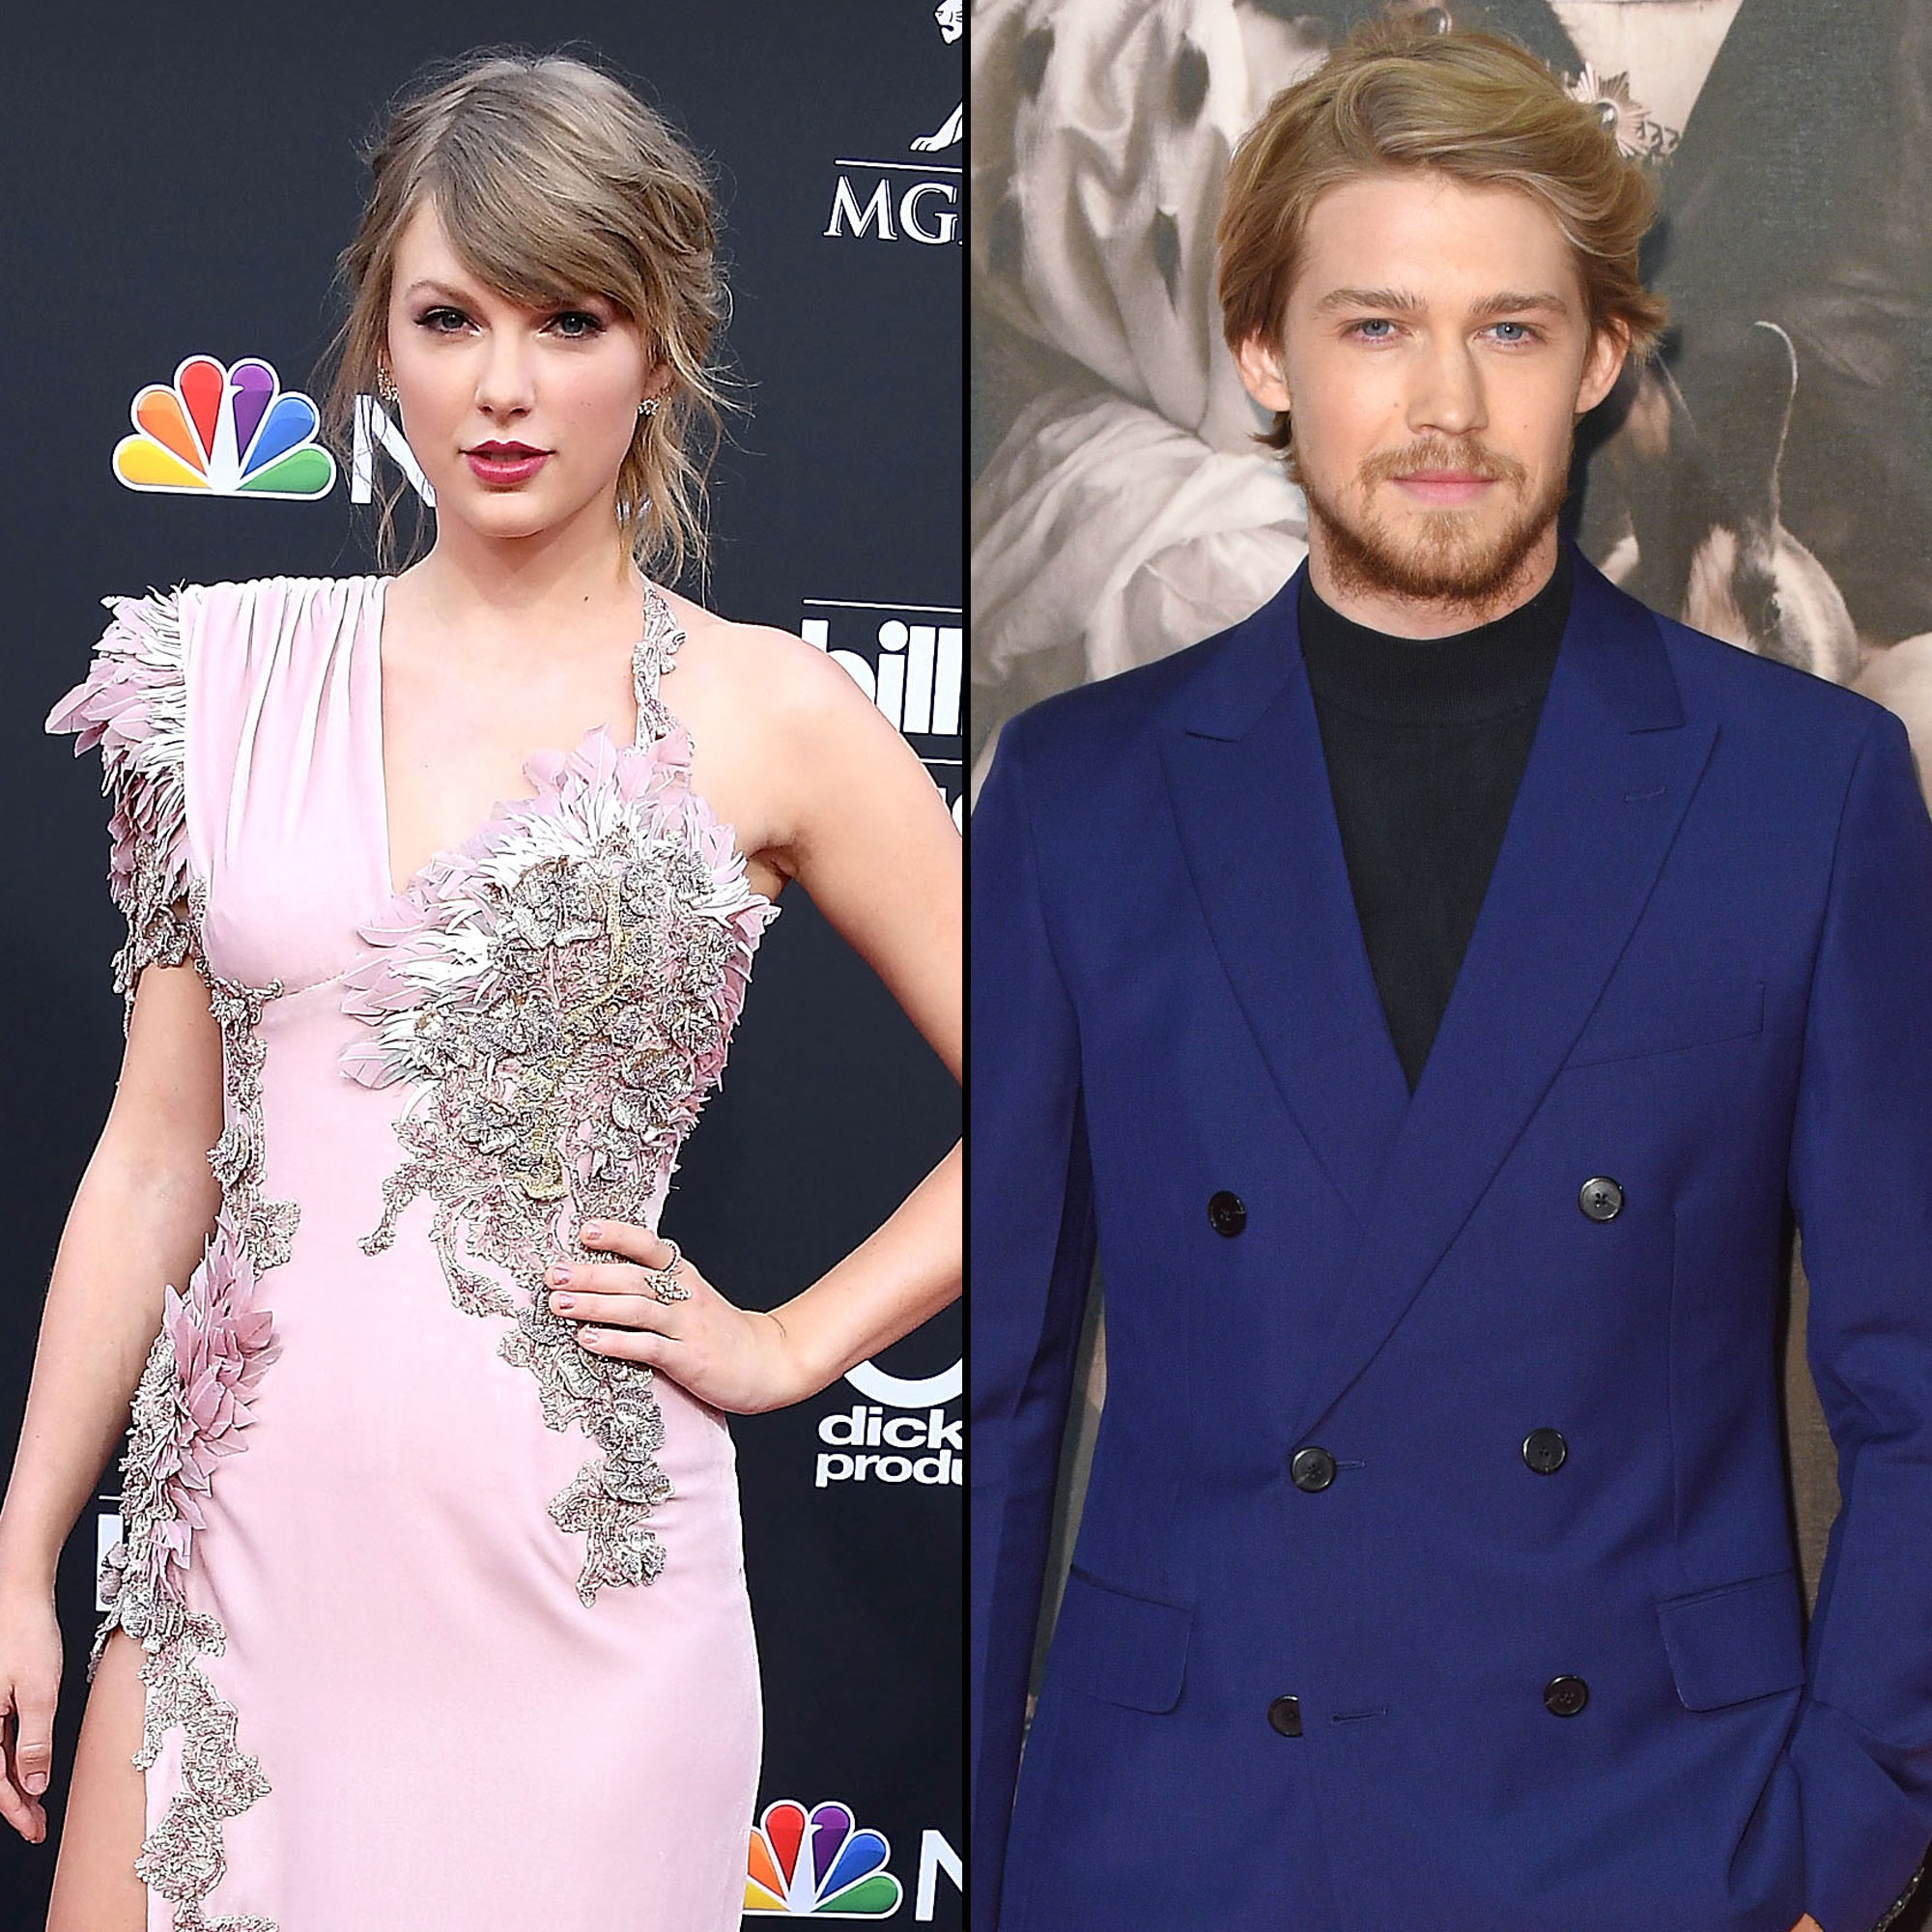 "Taylor Swift and Joe Alwyn: A Timeline of Their 'Gorgeous' Relationship - A video of the couple at Vanity Fair 's 2019 Oscars afterparty showed them packing on the PDA, with Alwyn resting his hand on his girlfriend's shoulder and Swift rubbing his back. ""Taylor stayed for a long time. She mingled throughout the party and seemed very happy the whole night,"" an eyewitness told Us exclusively."